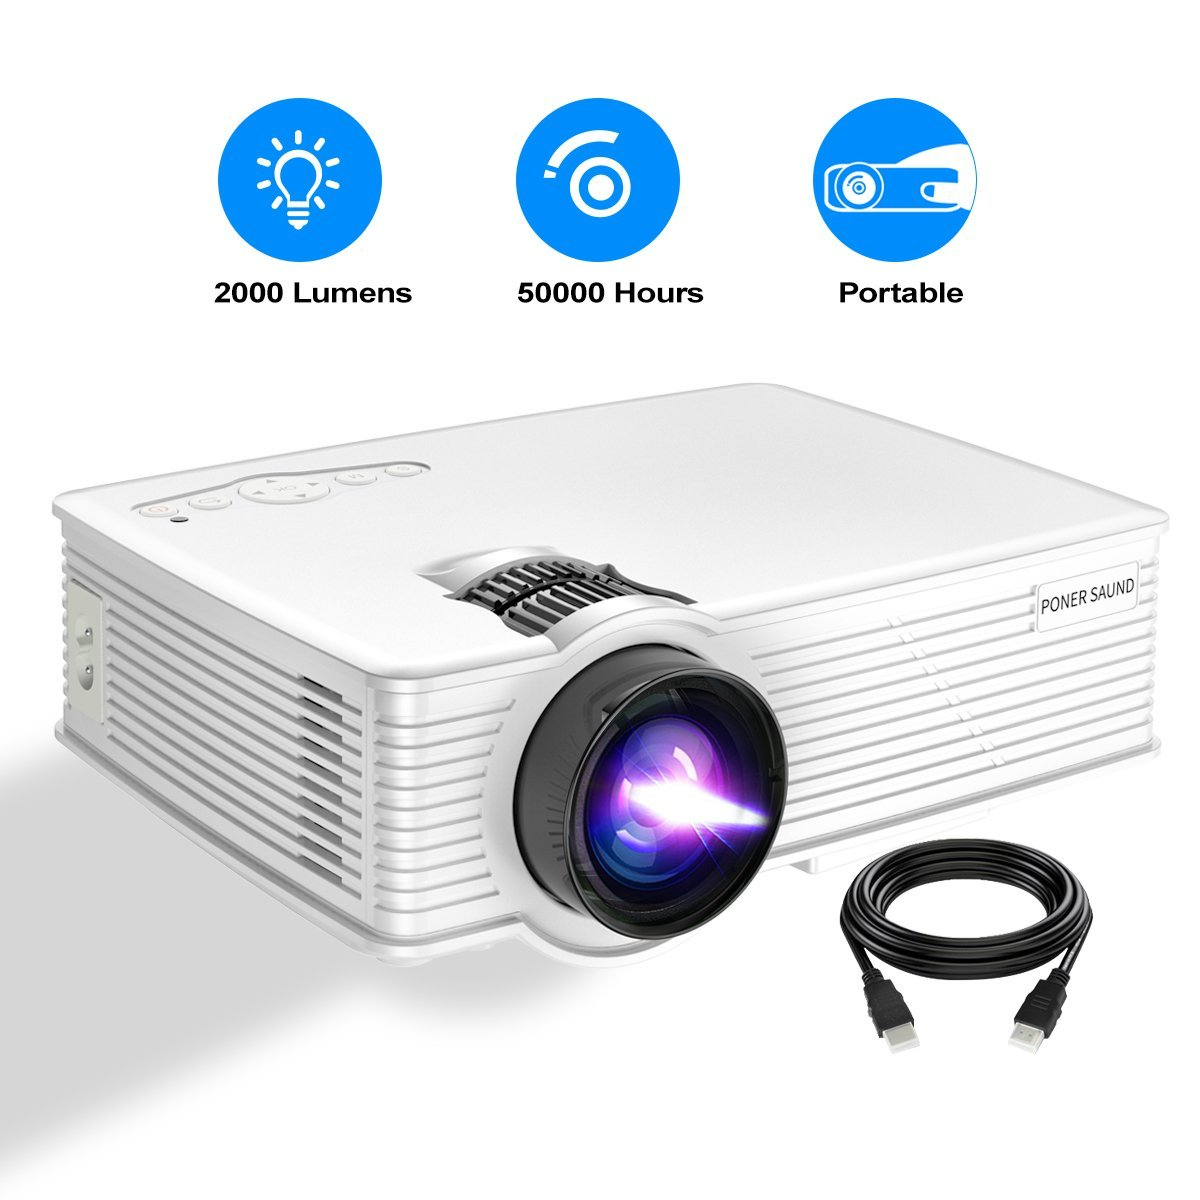 Portable Projector, PONER SAUND GP9 Projector 2000 Lux LED Mini Projector, 1080P Supported Video Projector with 170'' LCD, Compatible with Ipad, Fire TV Stick, PS4, HDMI, VGA, TF, USB by PONER SAUND